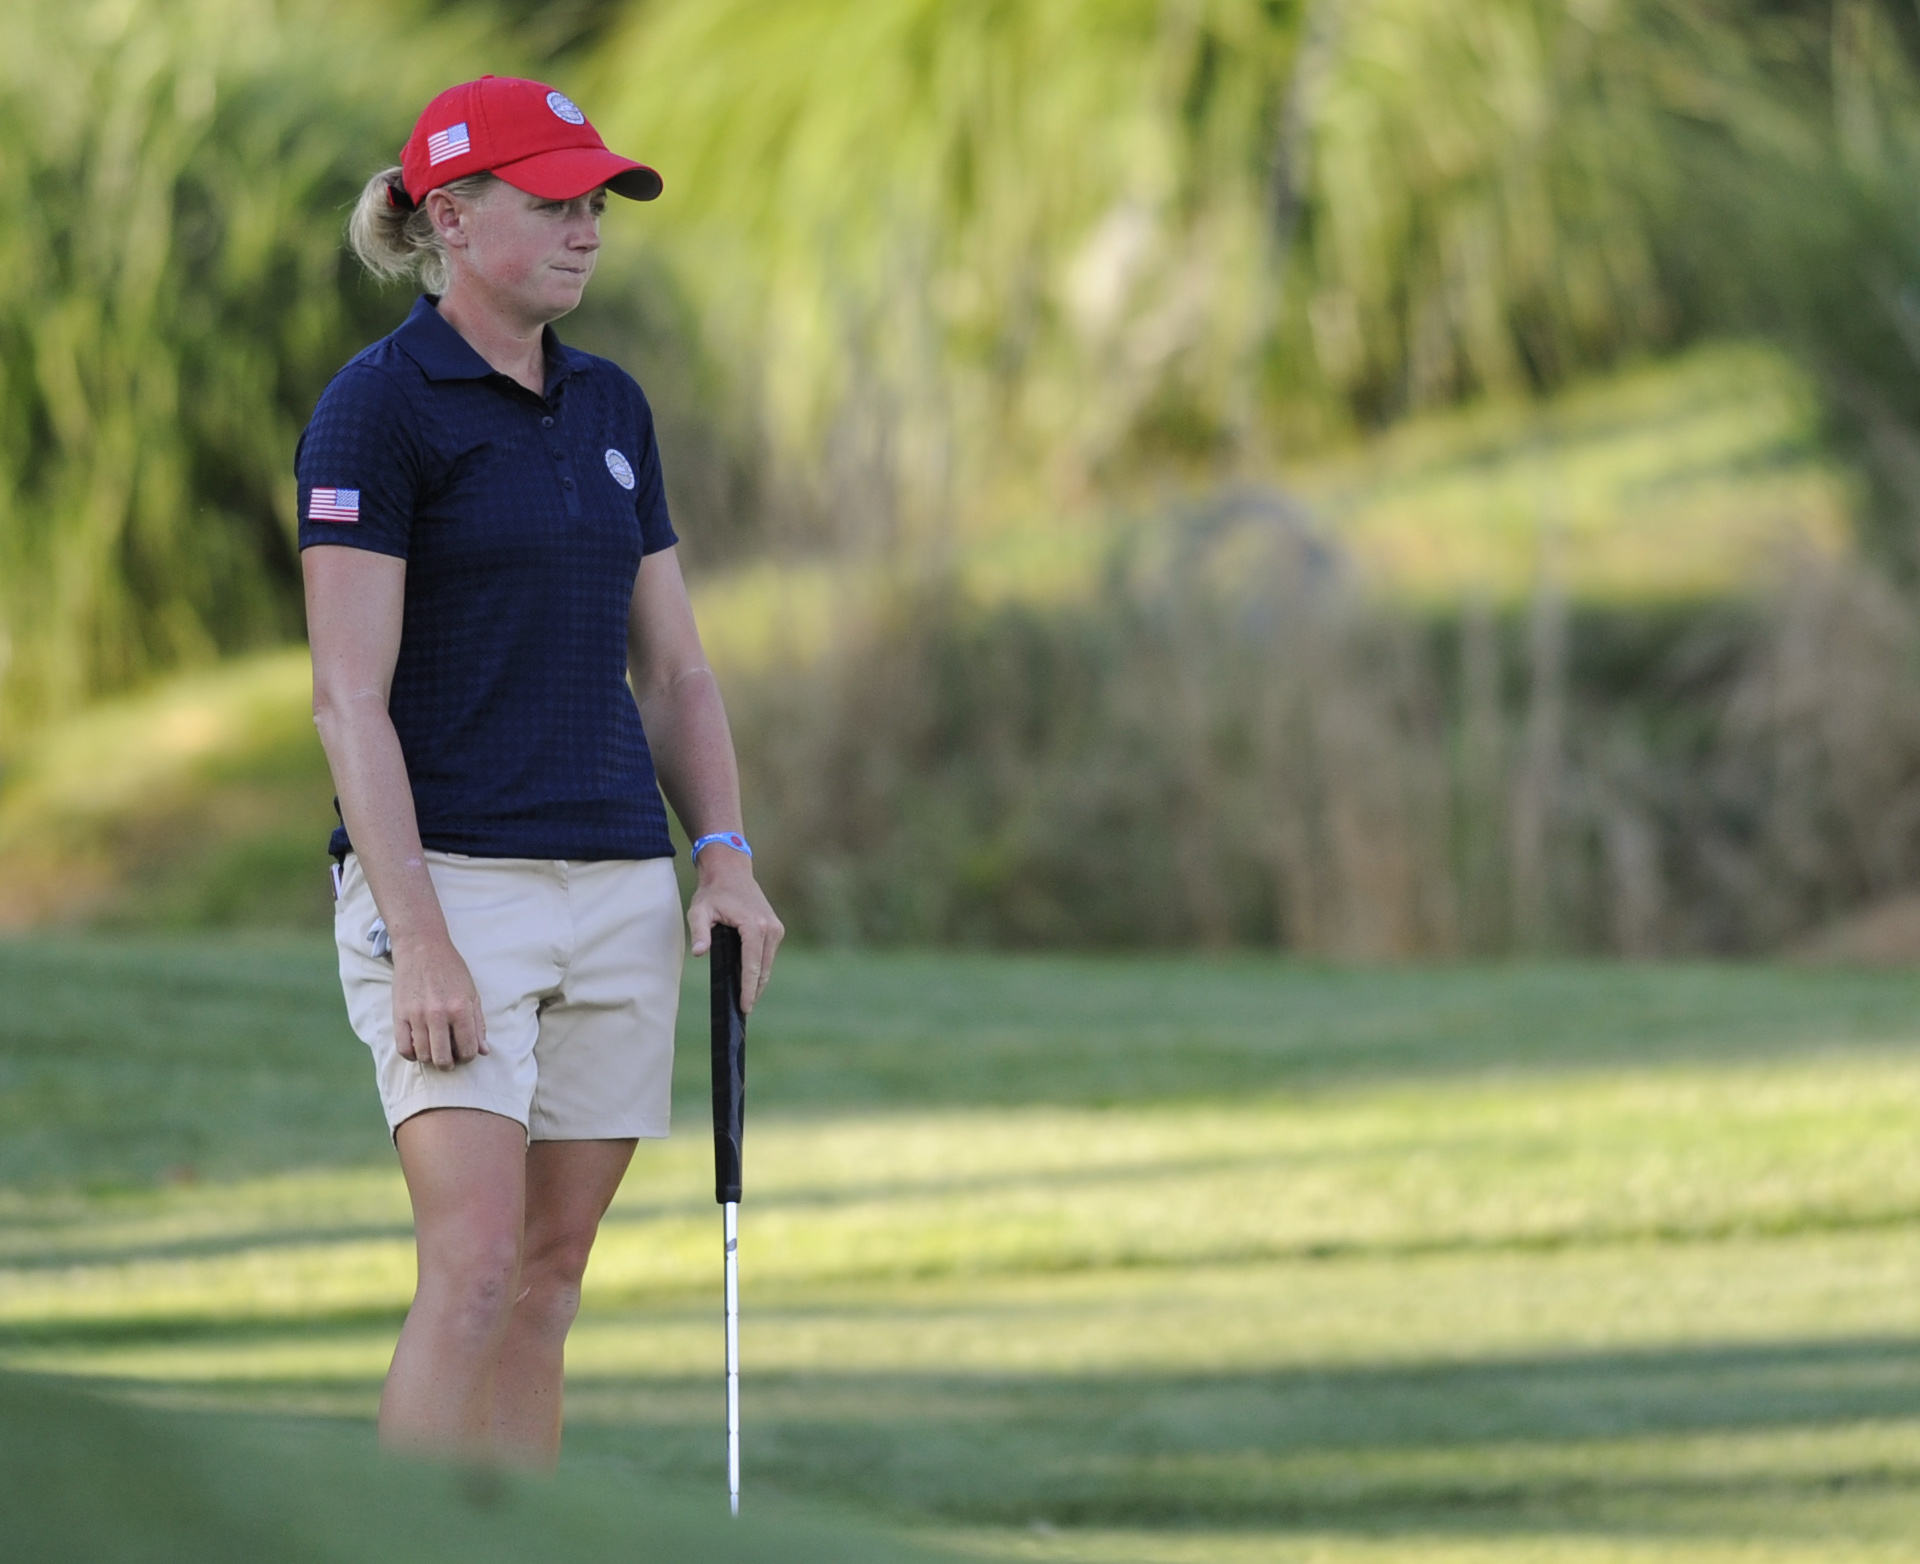 United States' Stacy Lewis reacts after missing a putt on the 18th hole during the third round of the International Crown golf tournament Saturday, July 26, 2014, in Owings Mills, Md